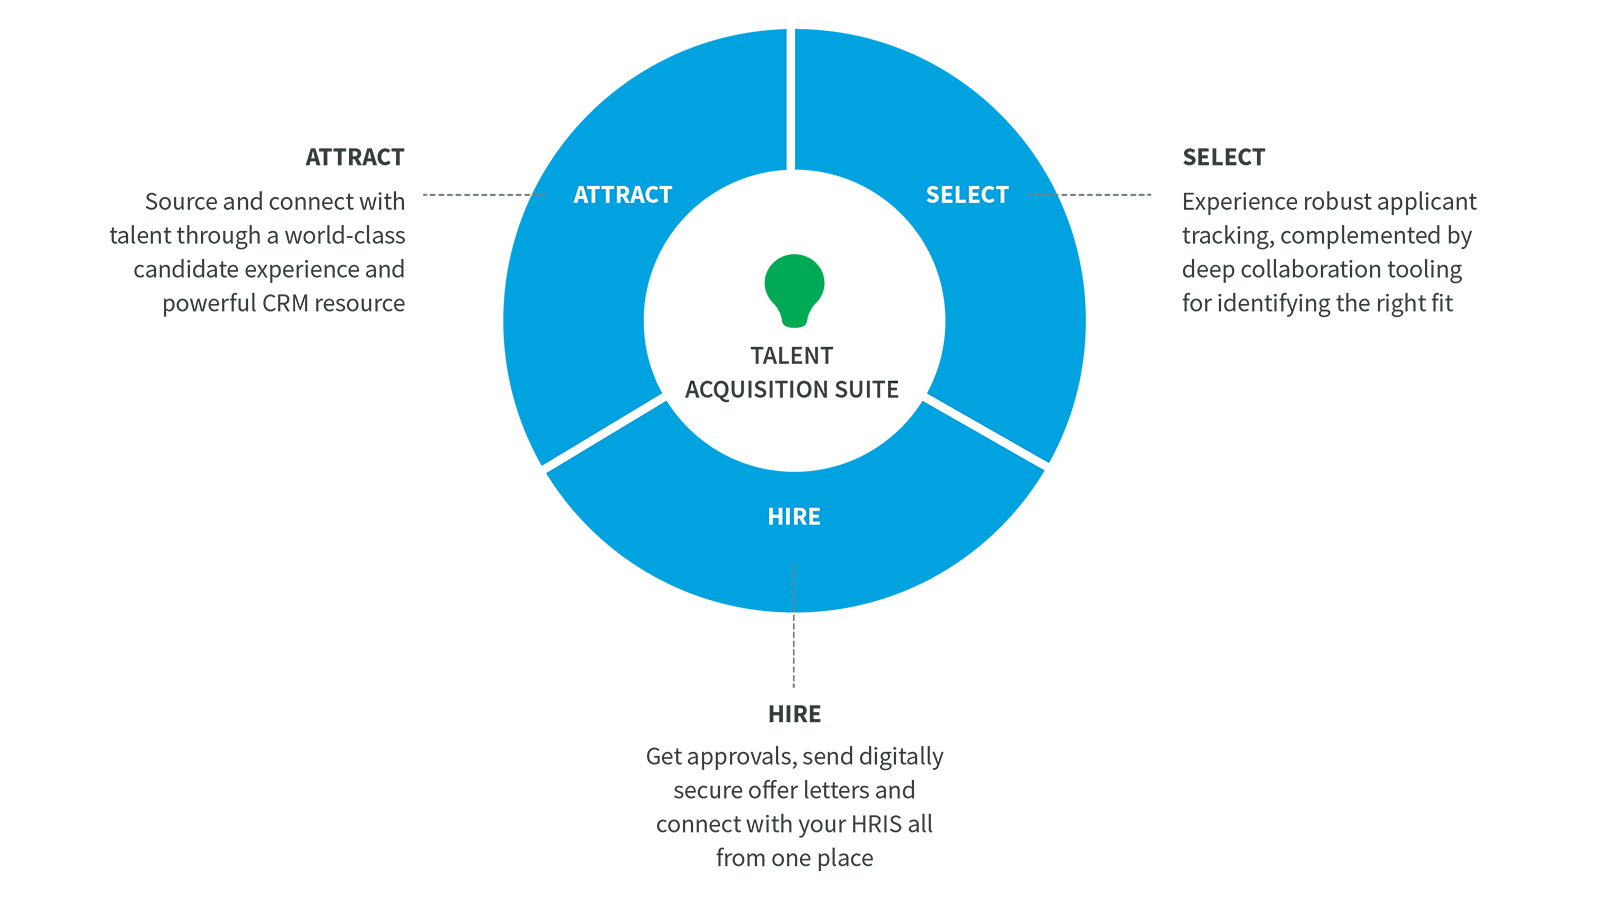 Attract - Select - Hire